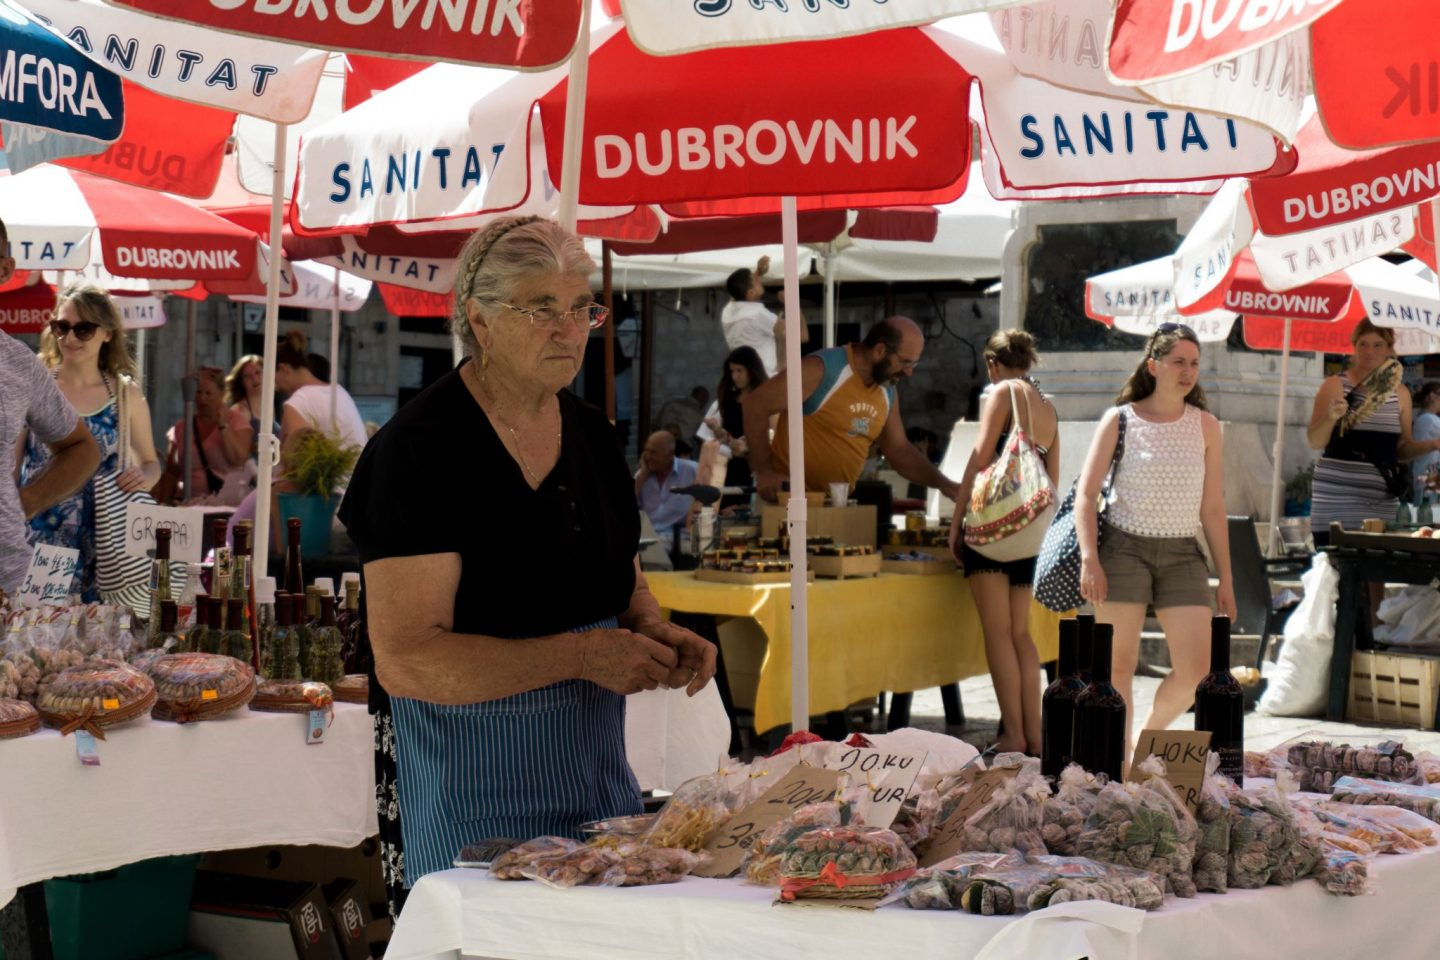 Travel Croatia Dubrovnik City Guide Nadia El Ferdaoussi the daily s'elf Dubrovnik Old Town farmer's market locals